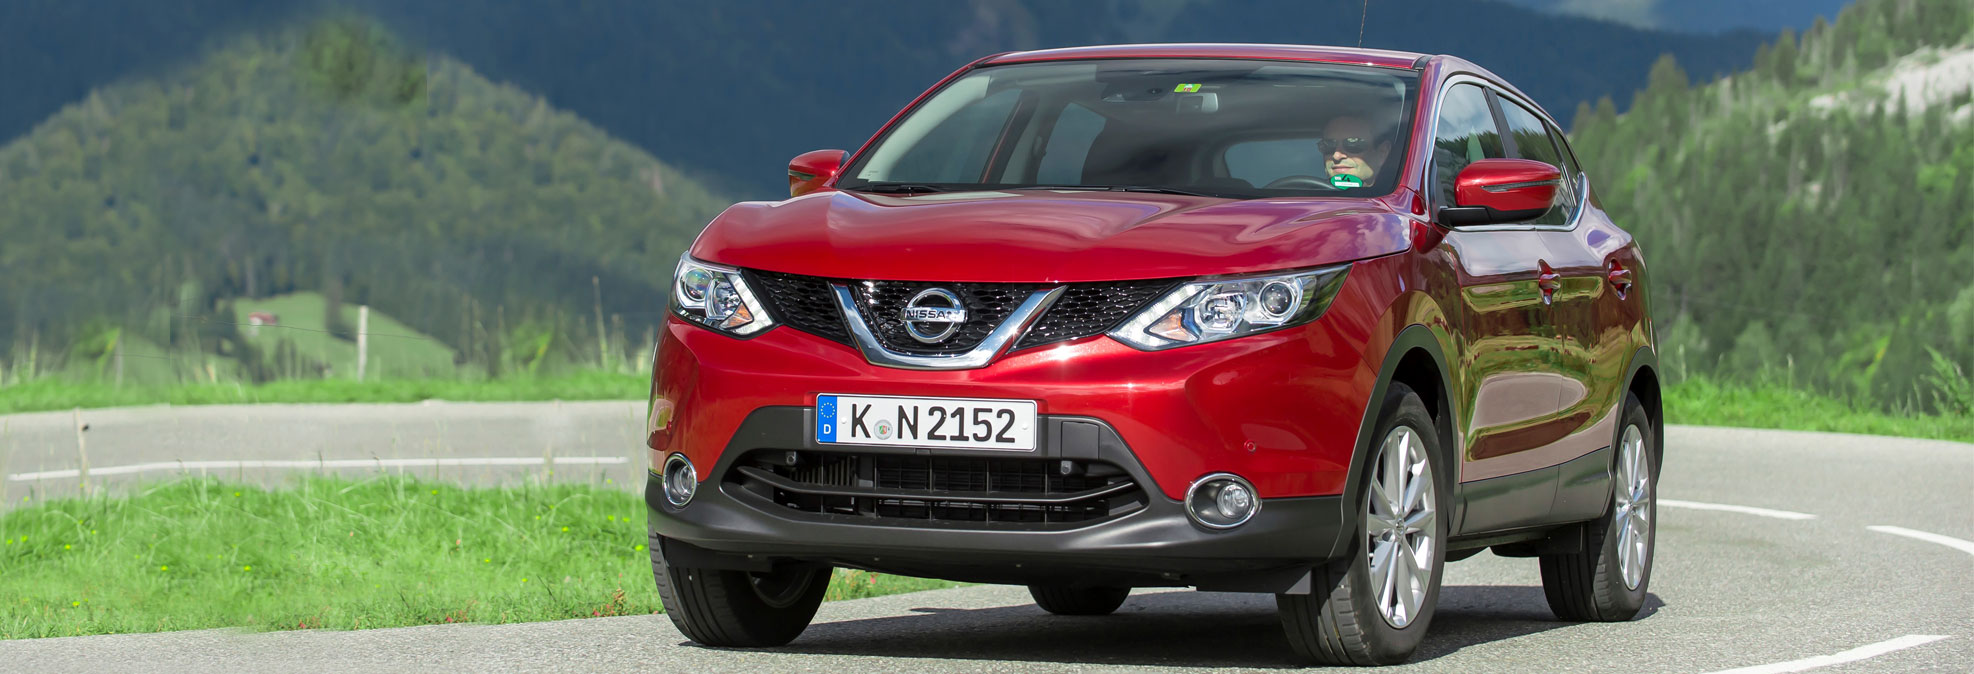 Nissan, Opel, and Suzuki Added to List of Automakers Accused of Cheating